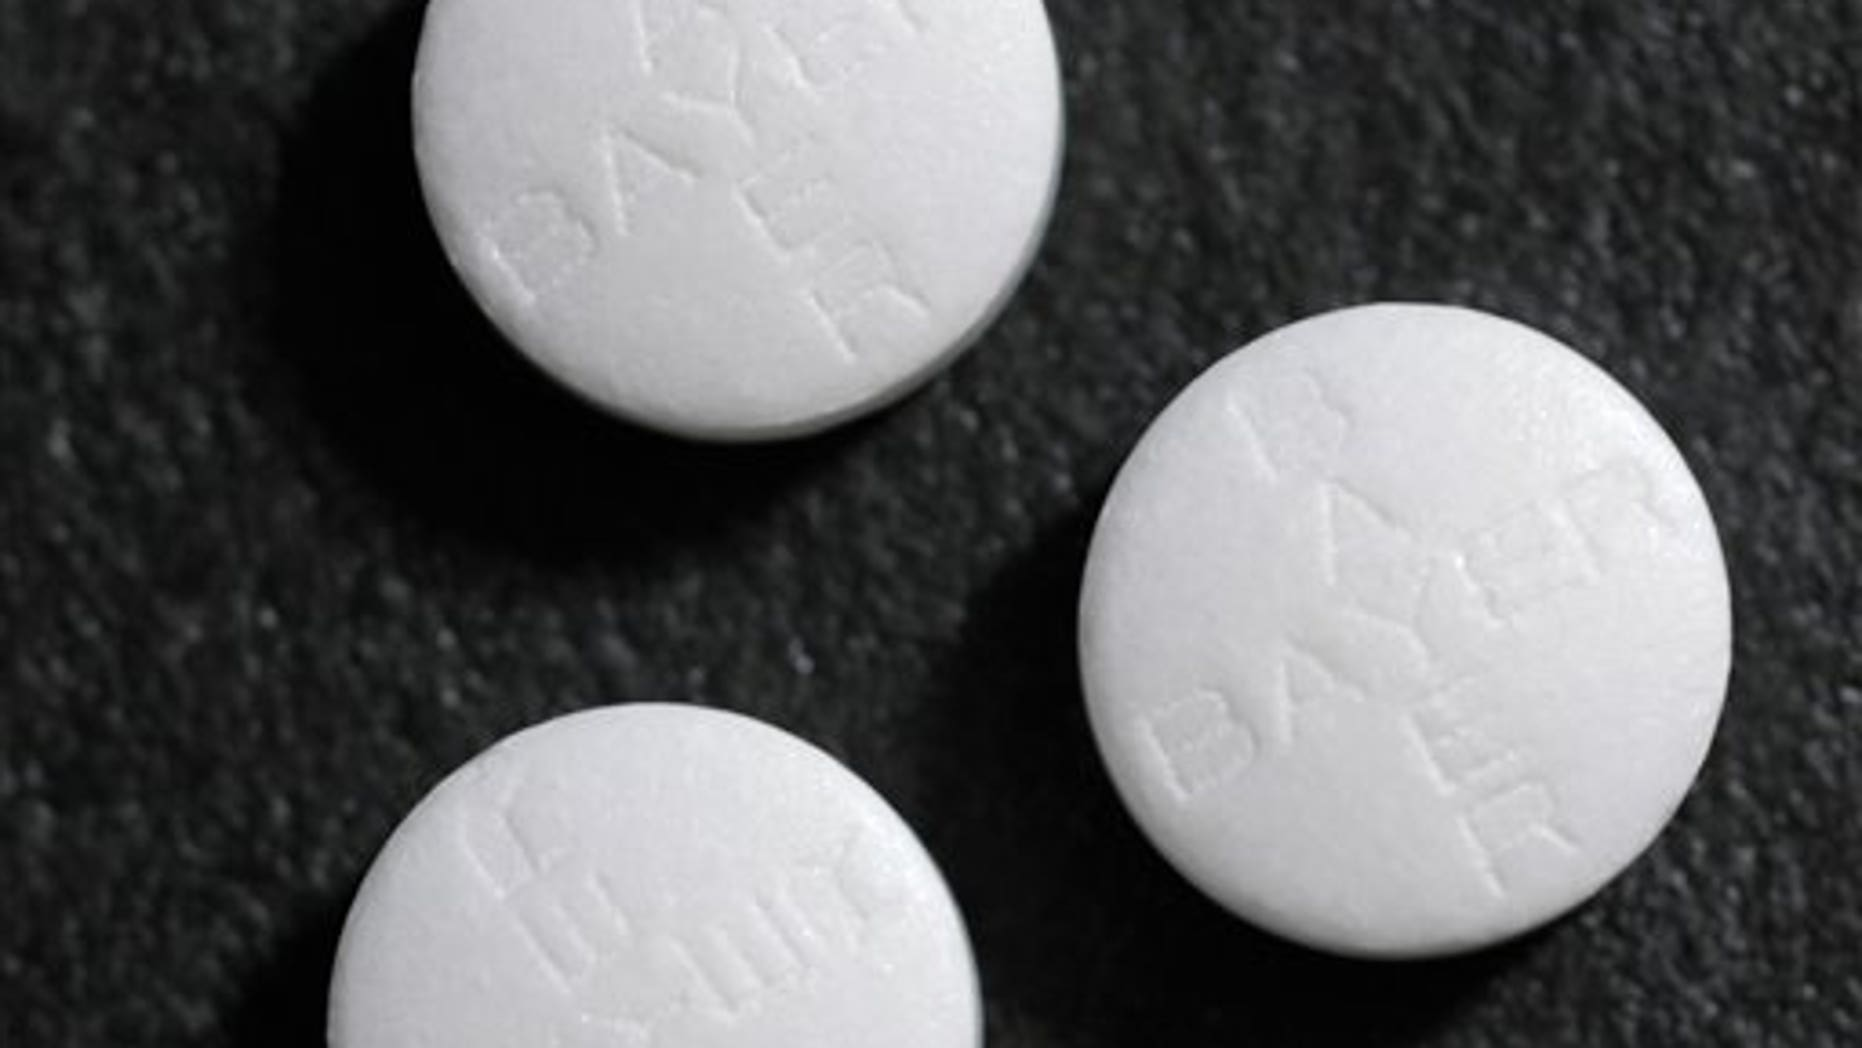 FILE - This May 25, 2004 file photo shows aspirin tablets. Aspirin, one of the world's oldest and cheapest drugs, has shown remarkable promise in treating colon cancer in people with certain genetic mutations that often play a role in the disease. The study appears in the Thursday, Oct. 25, 2012 New England Journal of Medicine. (AP Photo/Houston Chronicle, Dave Einsel)